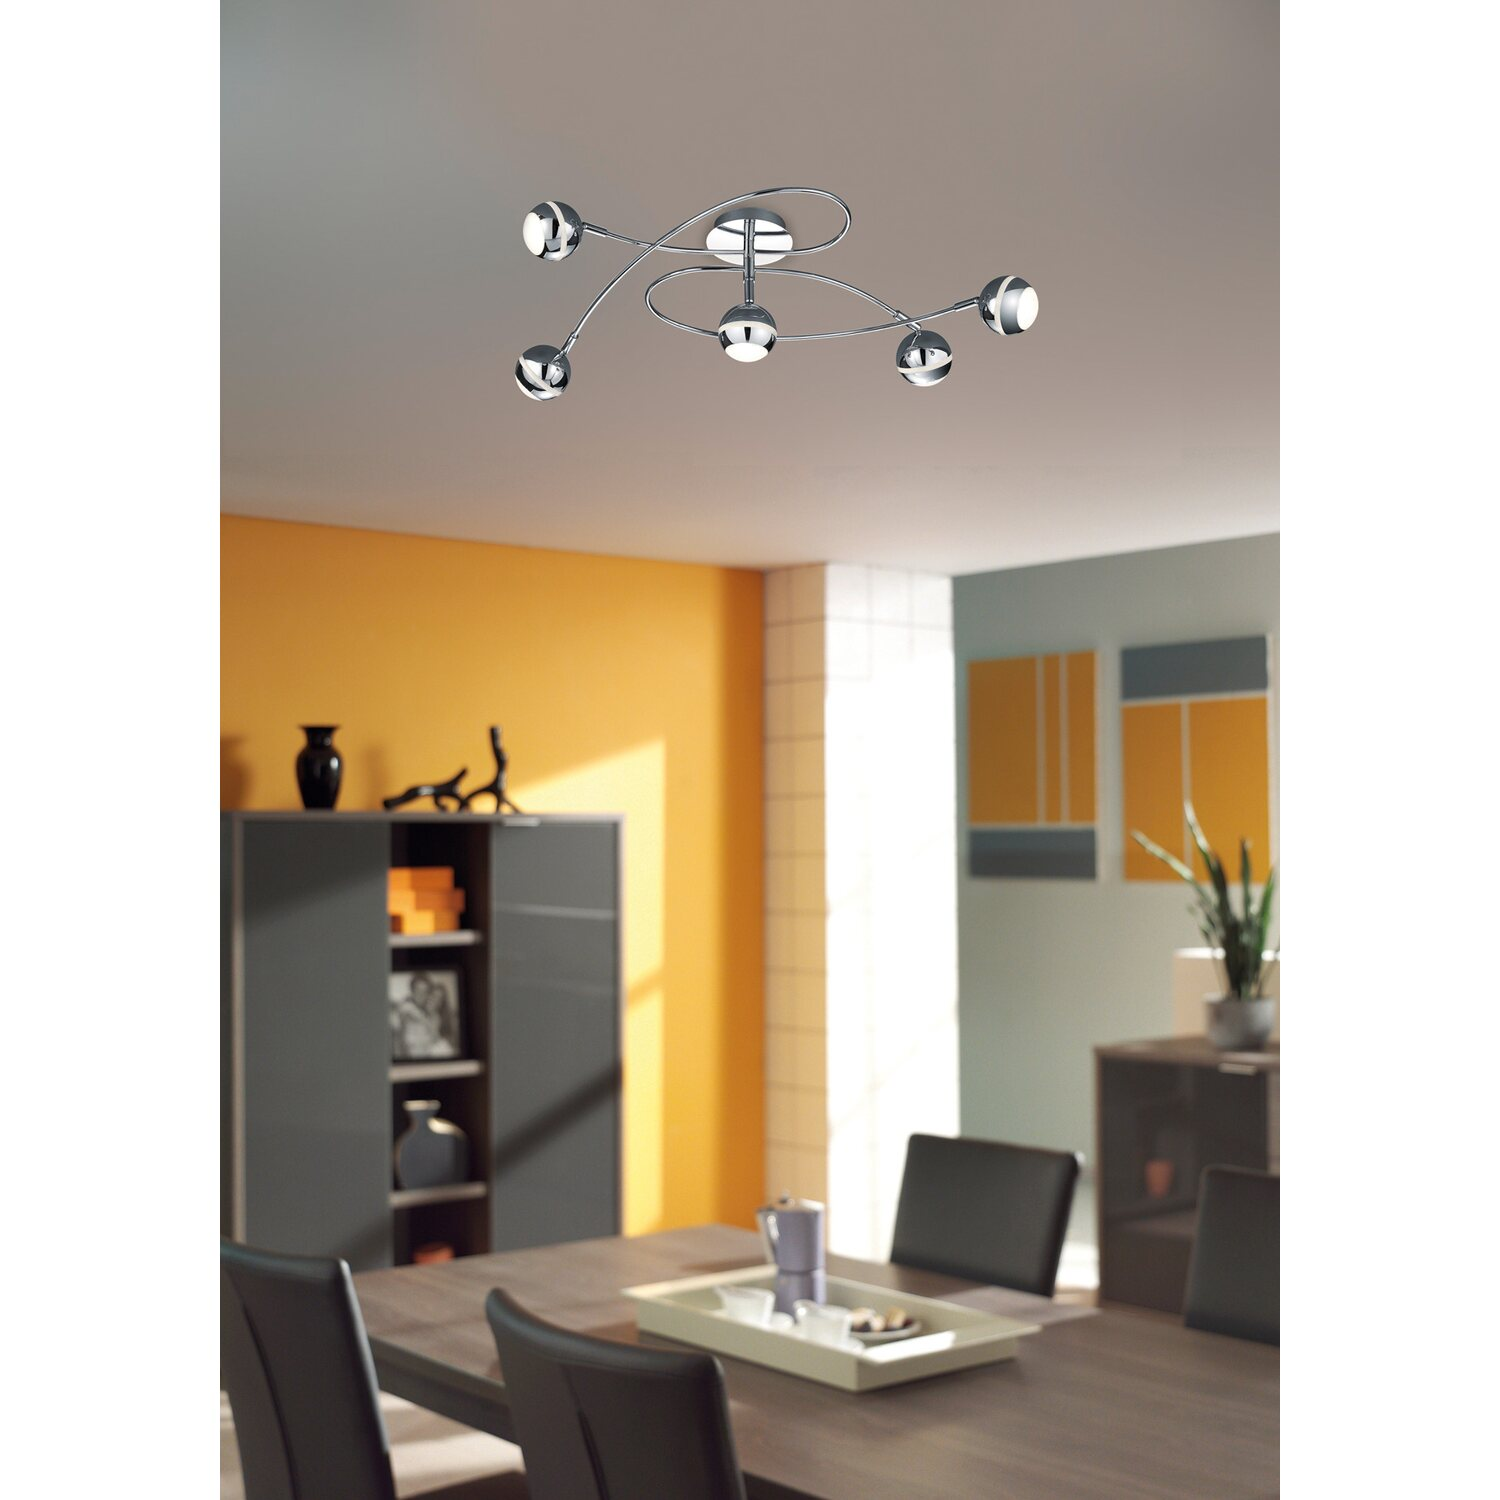 trio led deckenleuchte chrom 5 flammig eek a kaufen bei obi. Black Bedroom Furniture Sets. Home Design Ideas